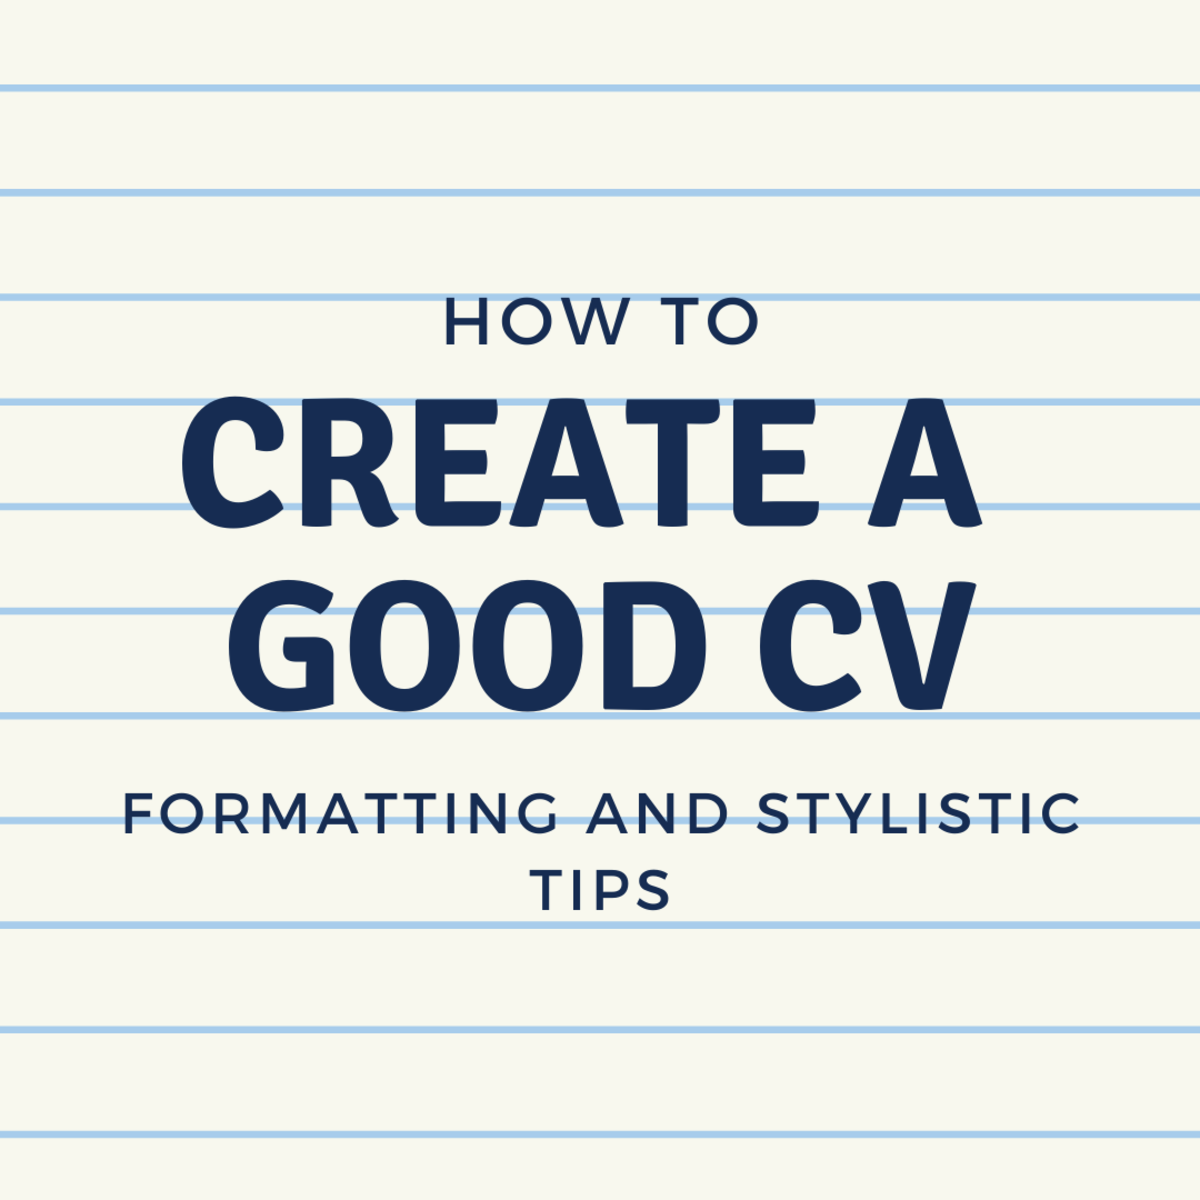 How to Arrange and Write a Good CV